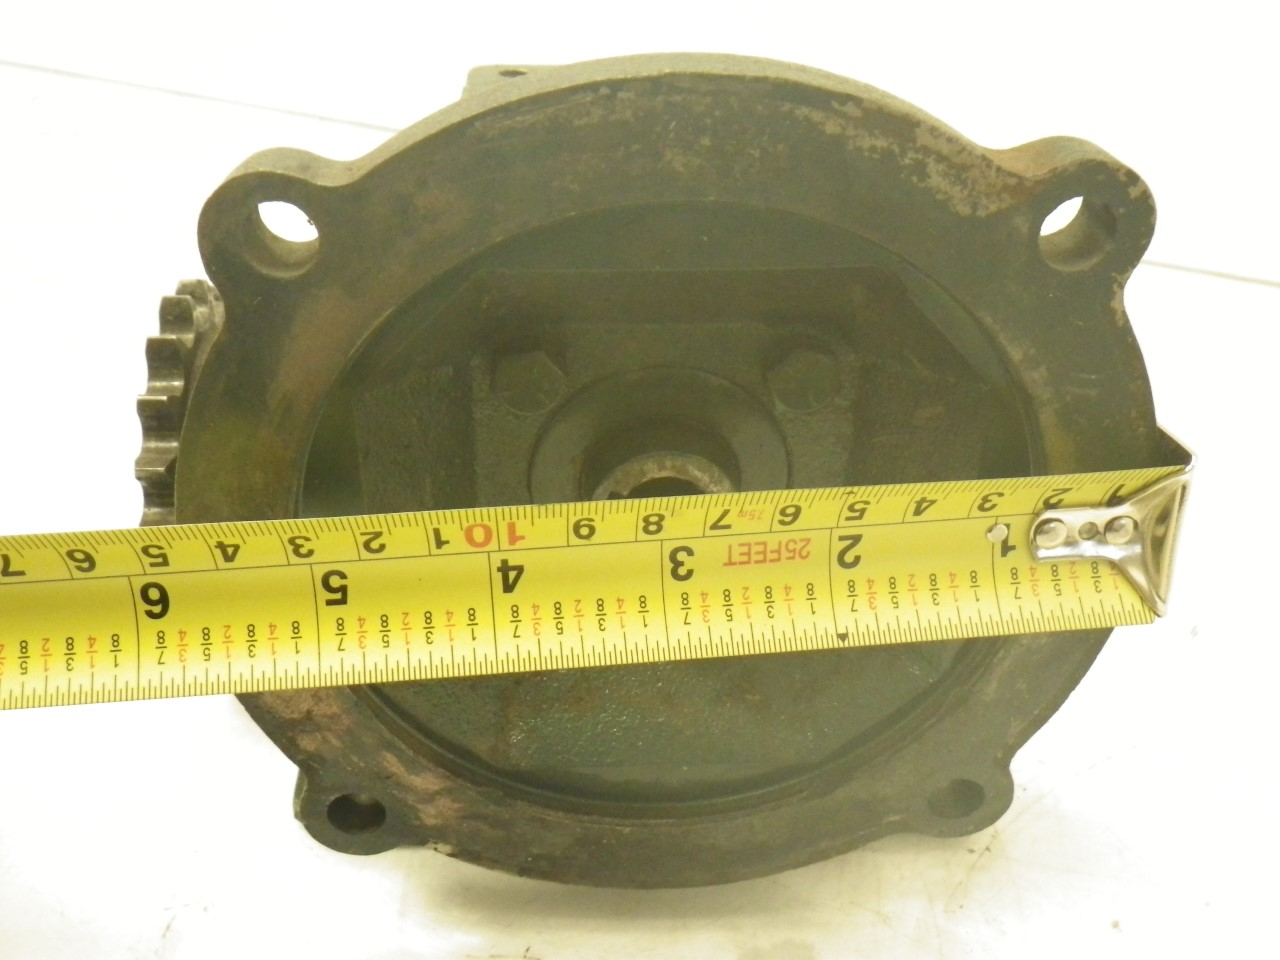 IMGP6972M01133-2 Flexaline GearBox 0.260 inhp, ratio140 motor frame56c (Used Tested) (11)